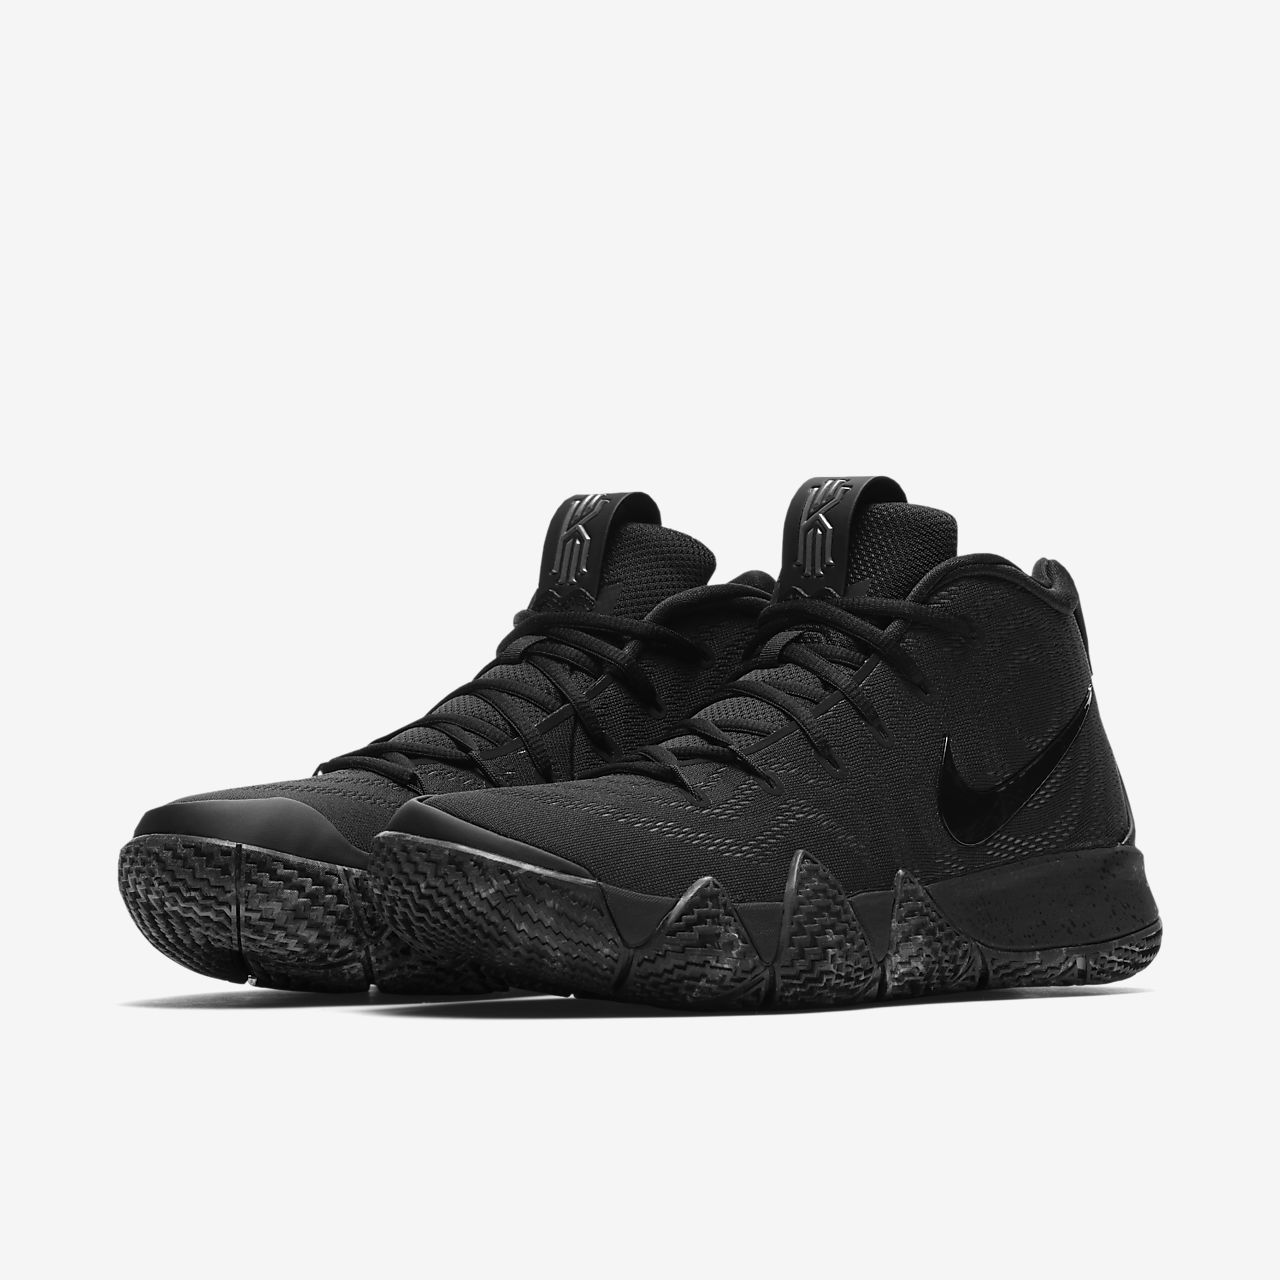 low priced 6dc73 c5cc3 ... Chaussure de basketball Kyrie 4